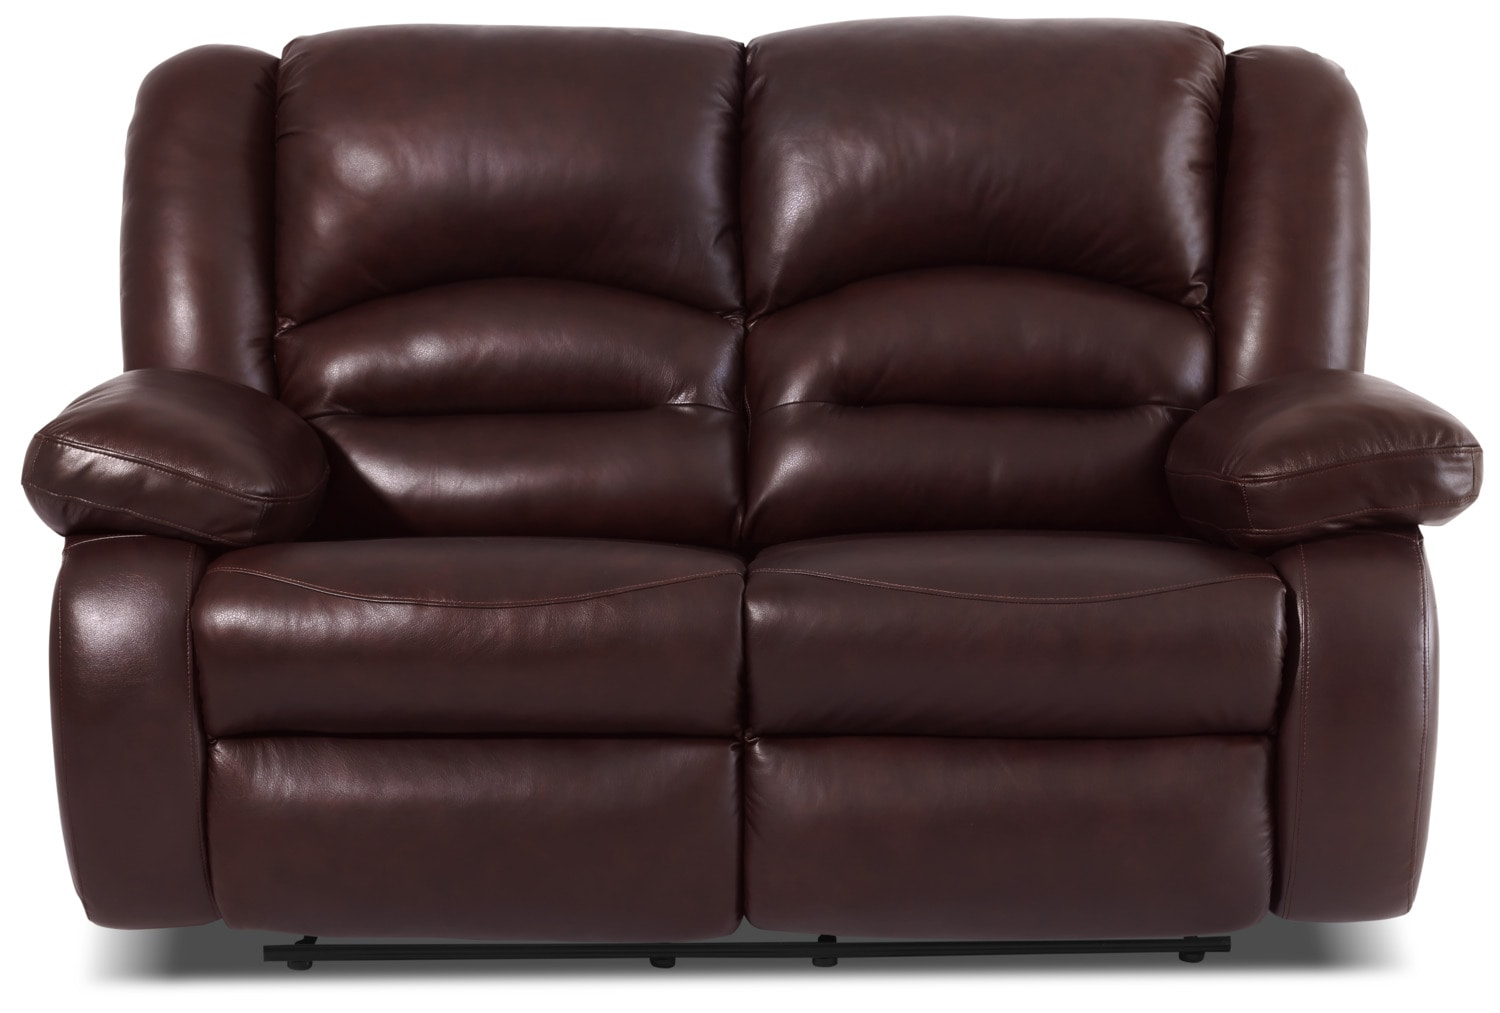 Toreno Genuine Leather Power Reclining Loveseat – Burgundy